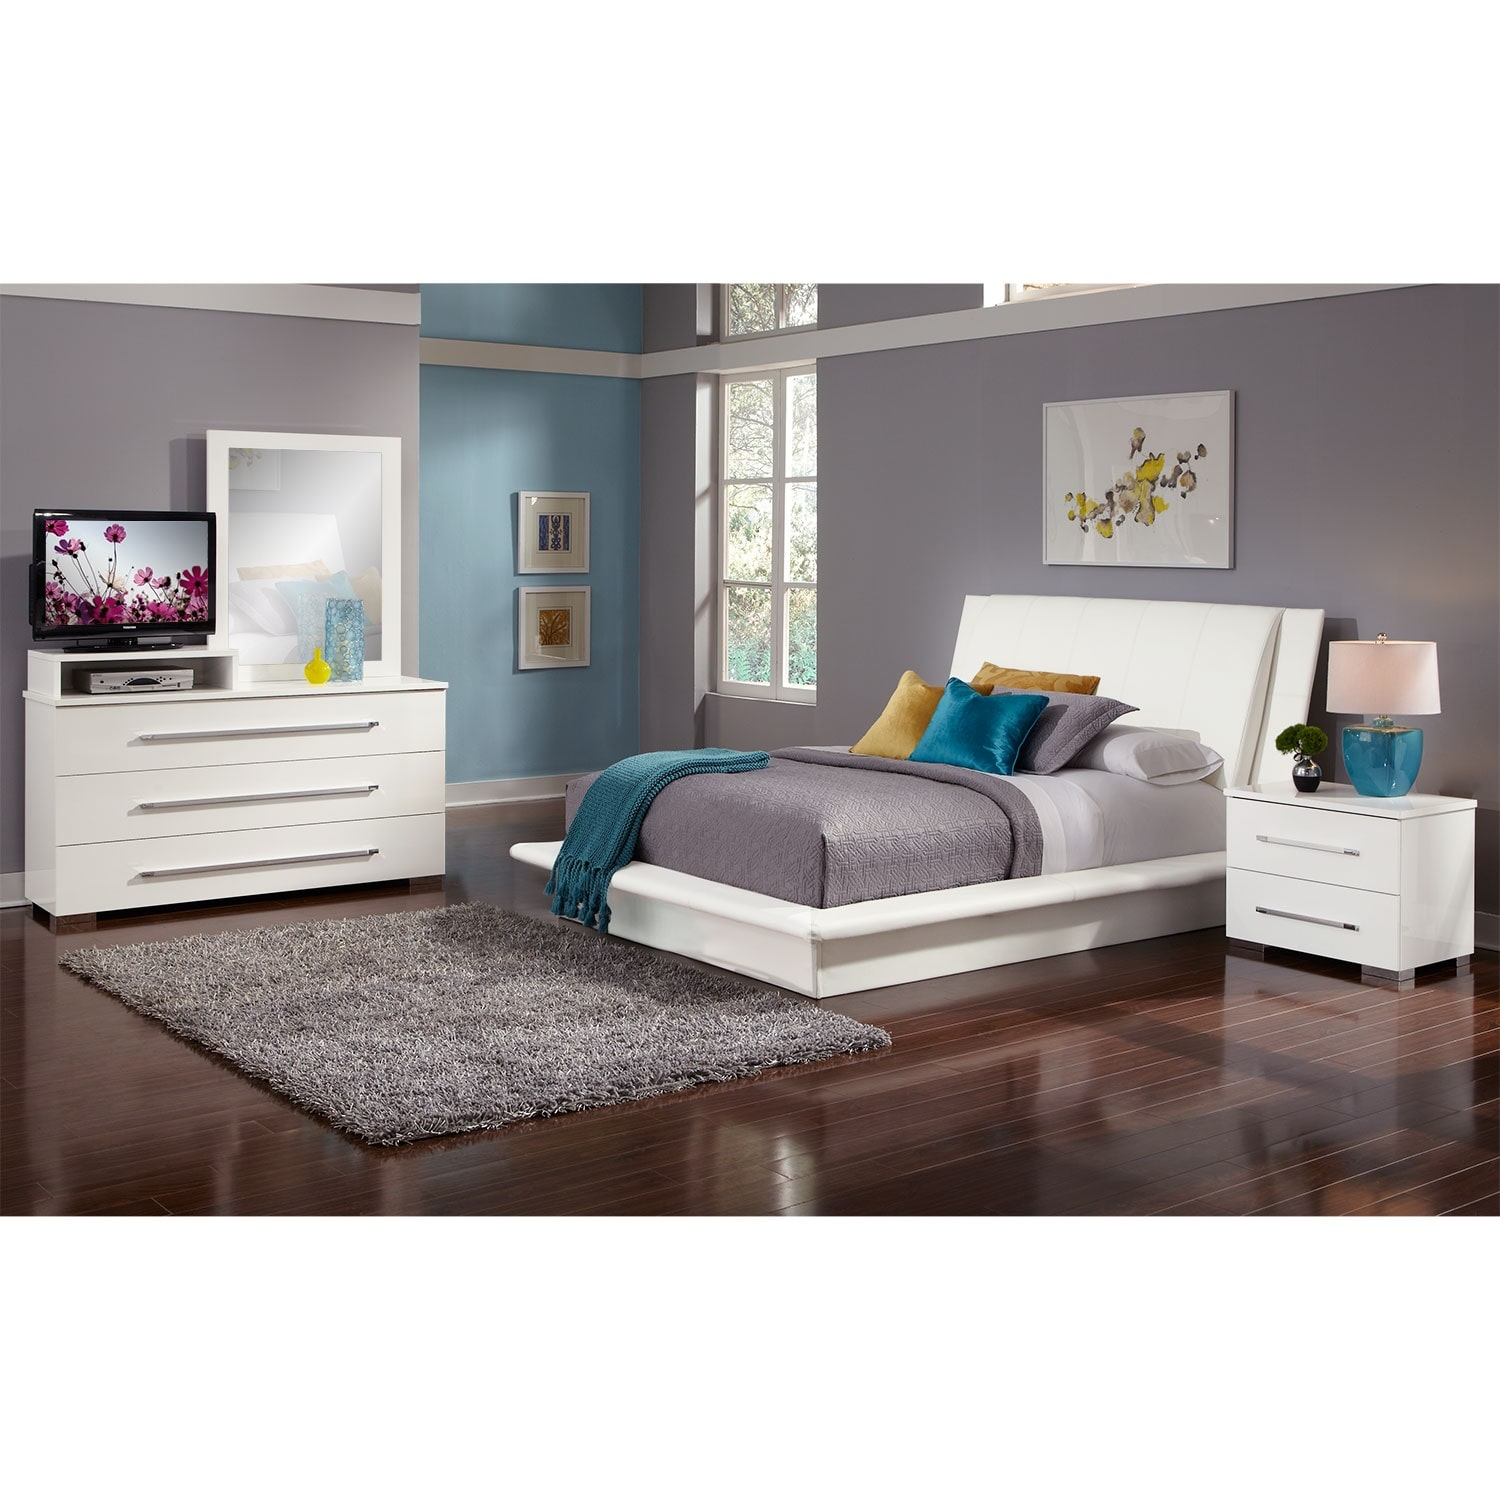 Dimora 6-Piece King Upholstered Bedroom Set with Media Dresser - White